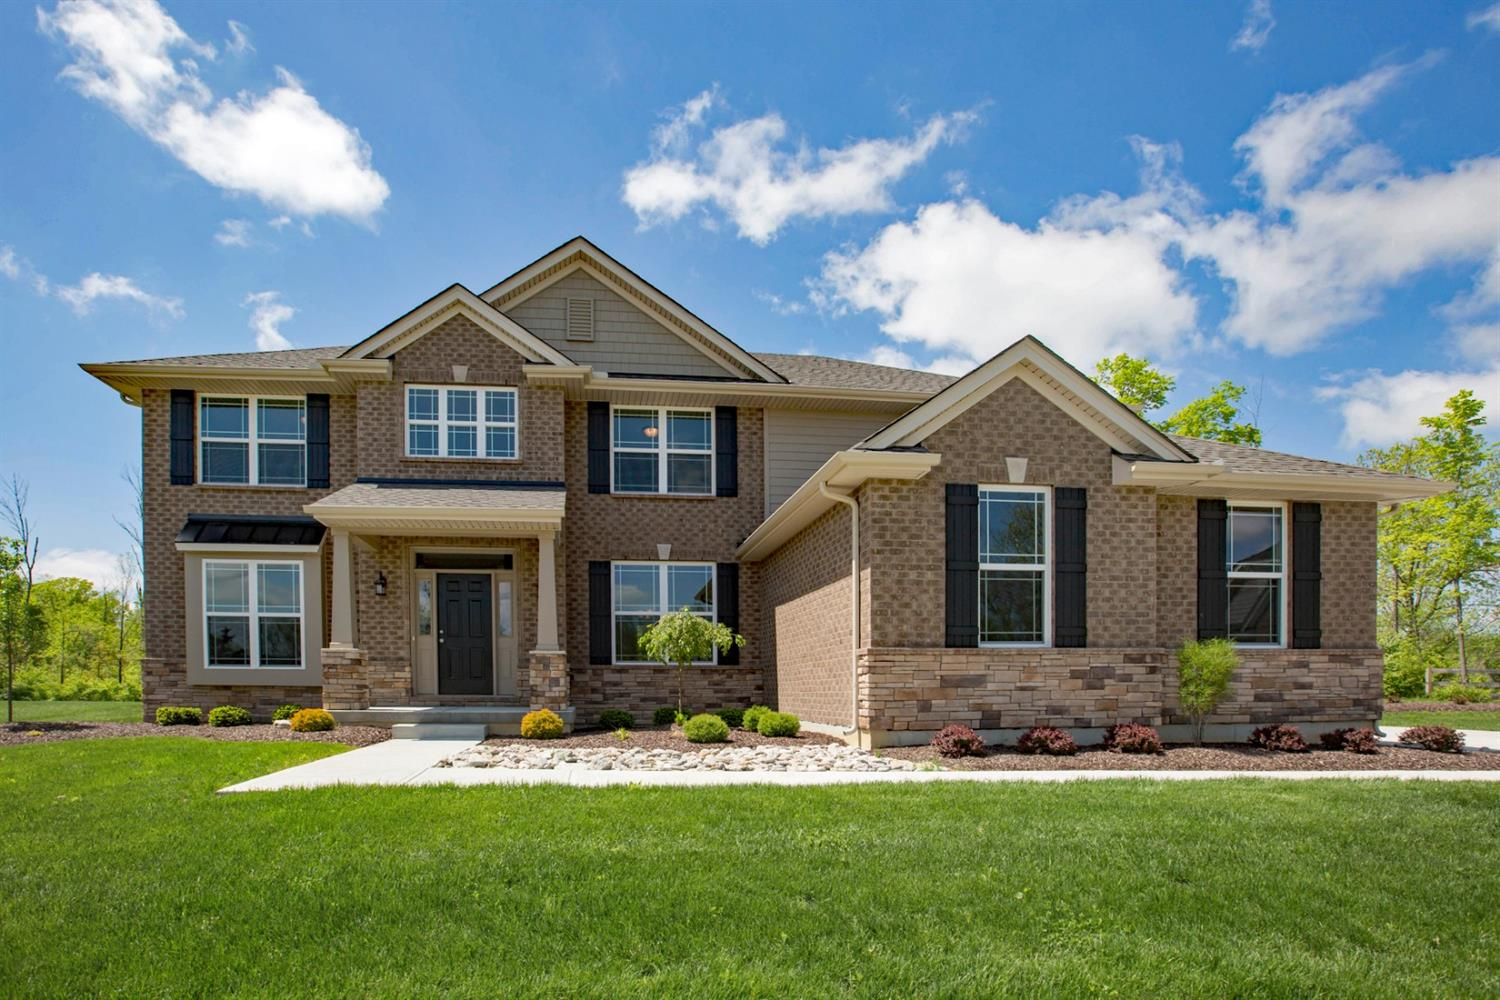 Property for sale at 5303 Woodview Way Unit: AT-9, Liberty Twp,  Ohio 45011